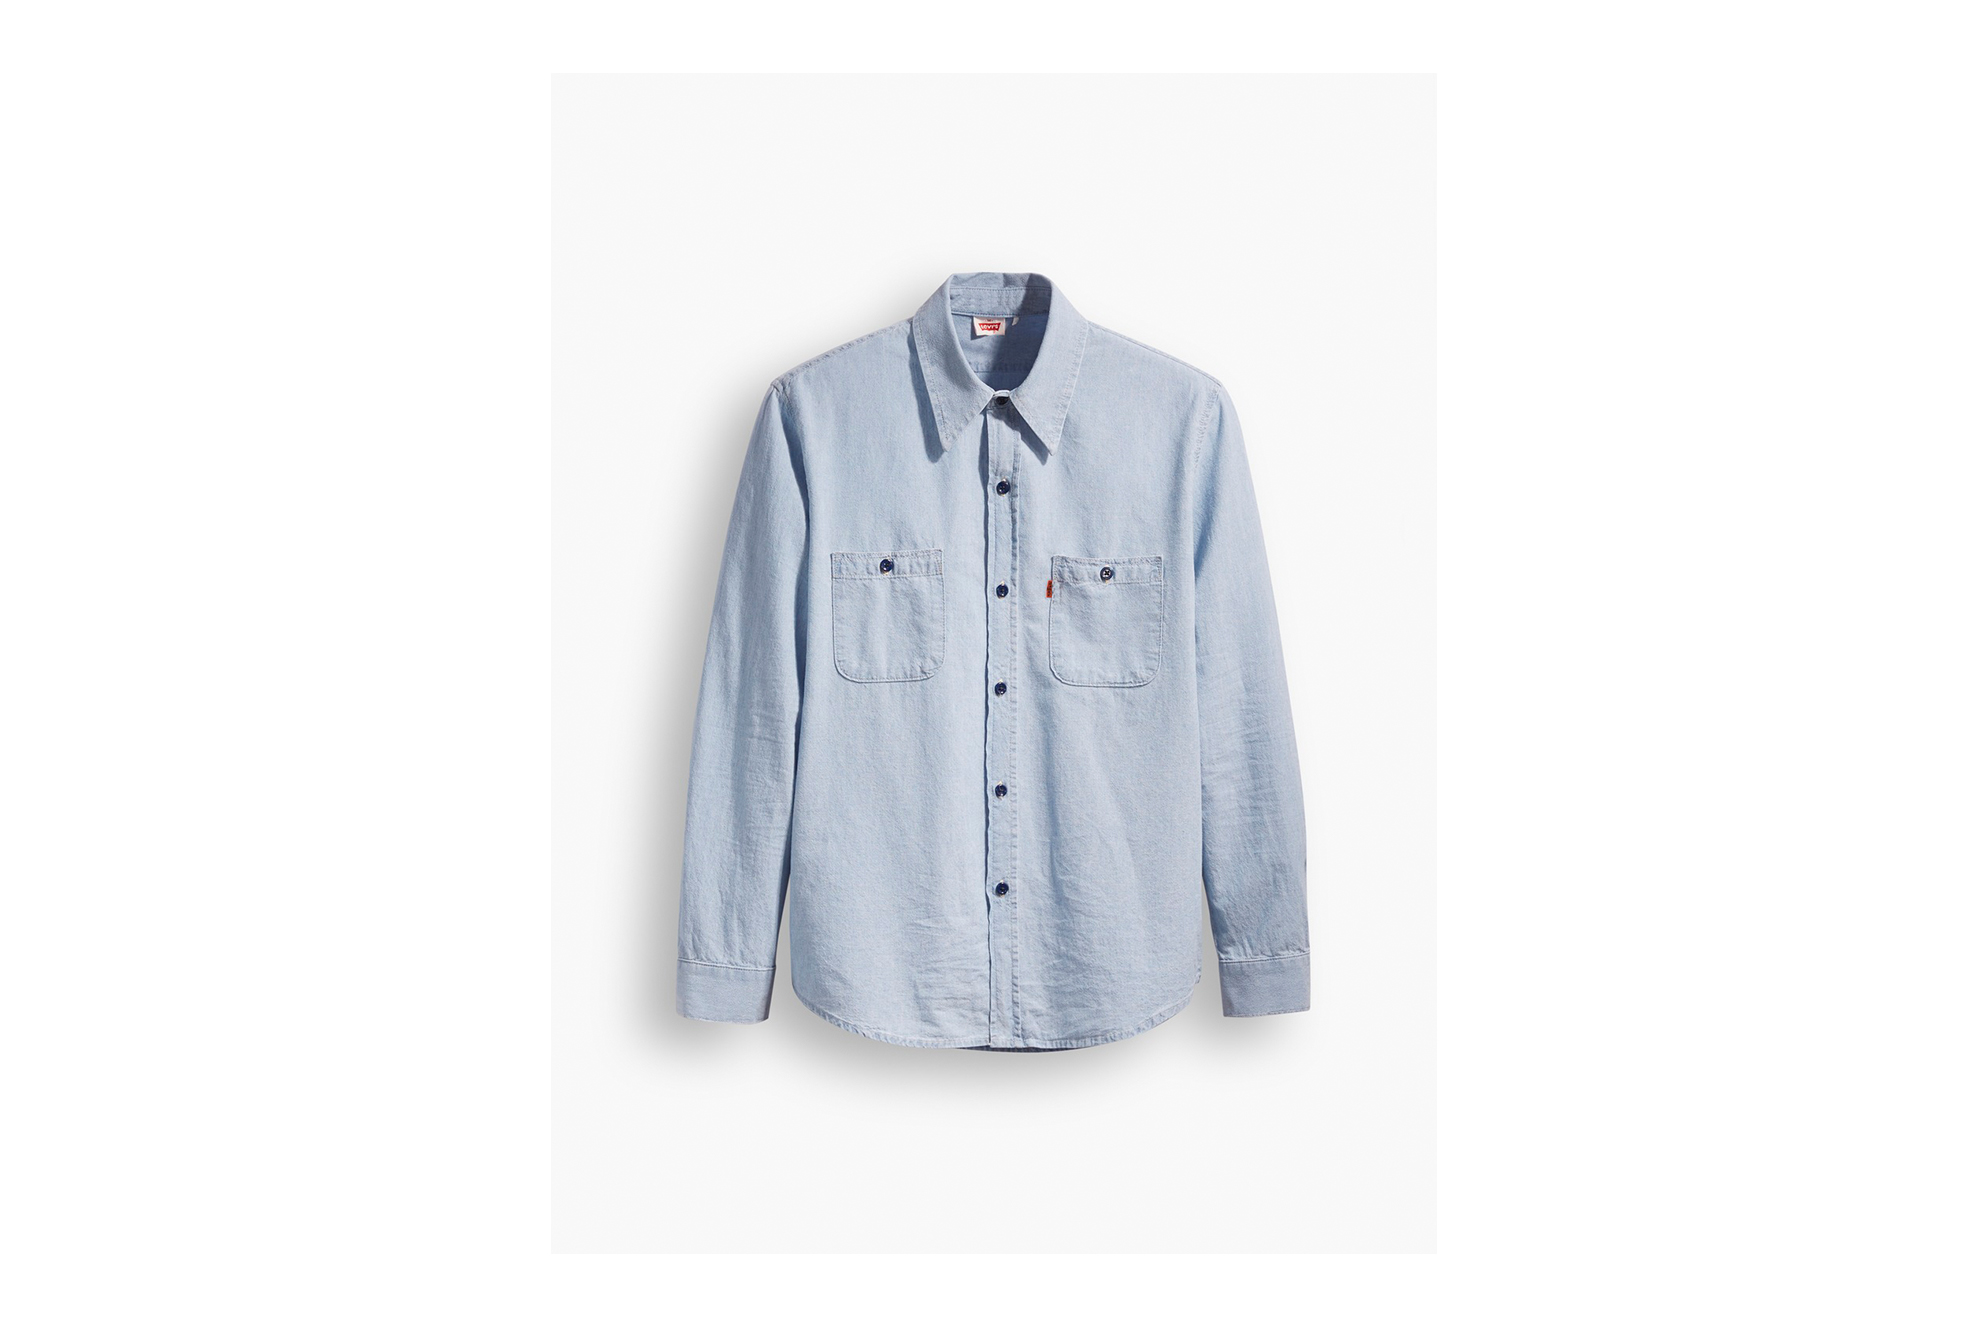 Levi's Vintage Clothing SS17-6